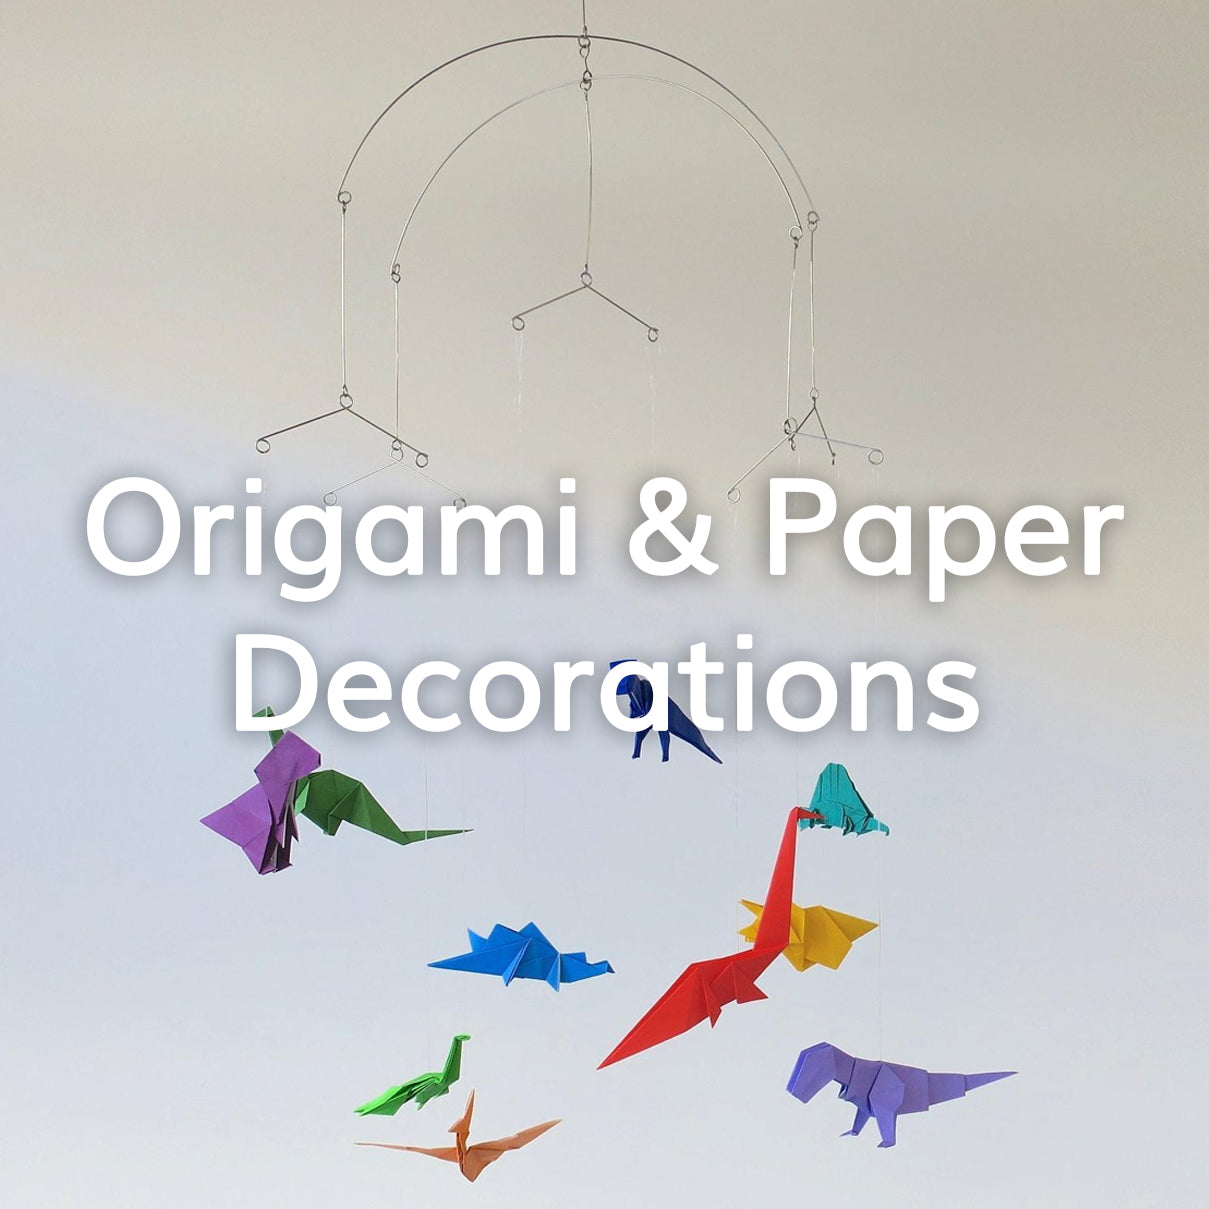 Origami & Paper decorations in London